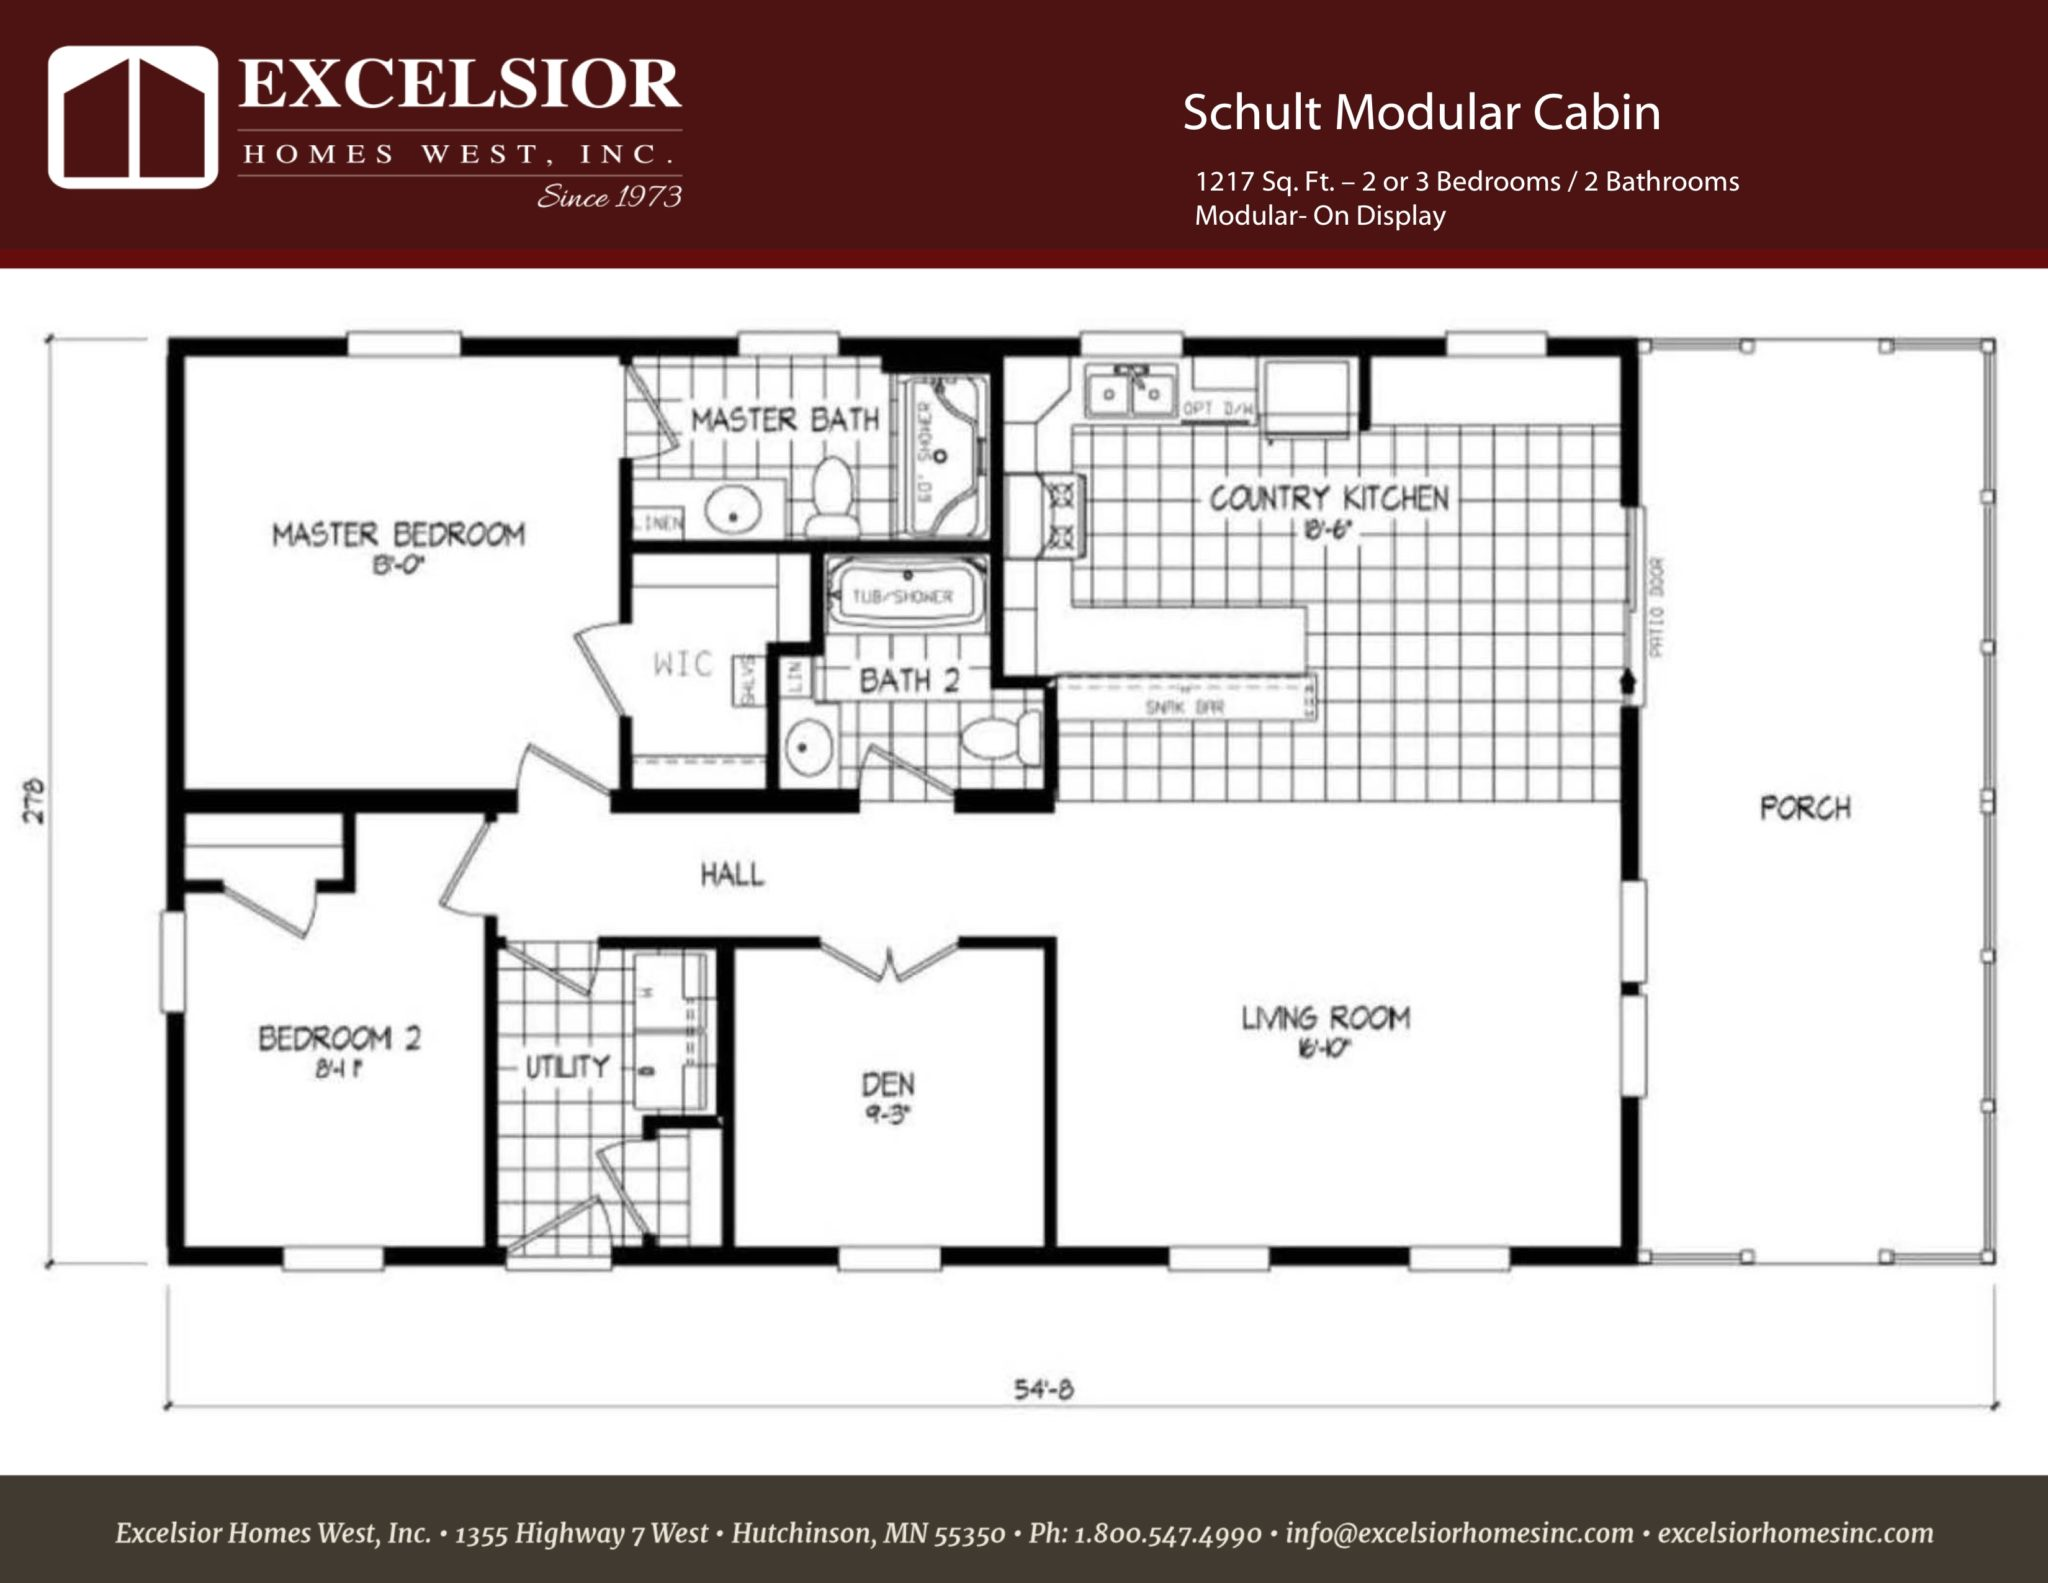 Schult Modular Cabin Model Home on Mississippi Home Floor Plans